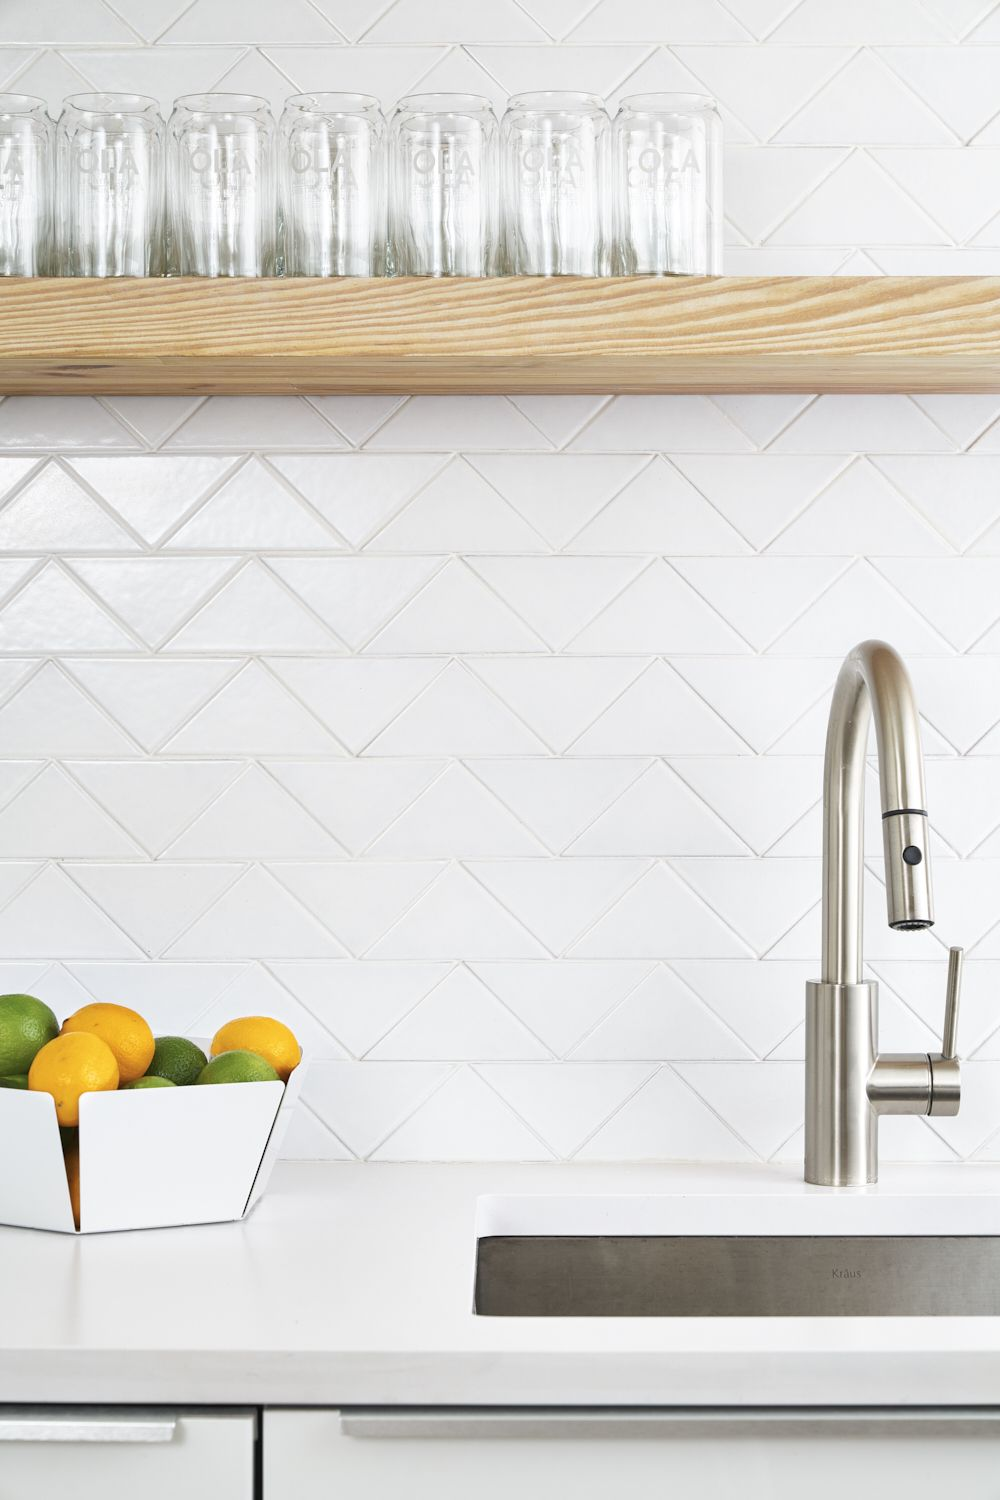 Tile School The Top Five Things You Should Know About Grout White Kitchen Tiles Fireclay Tile Handmade Tile Kitchen